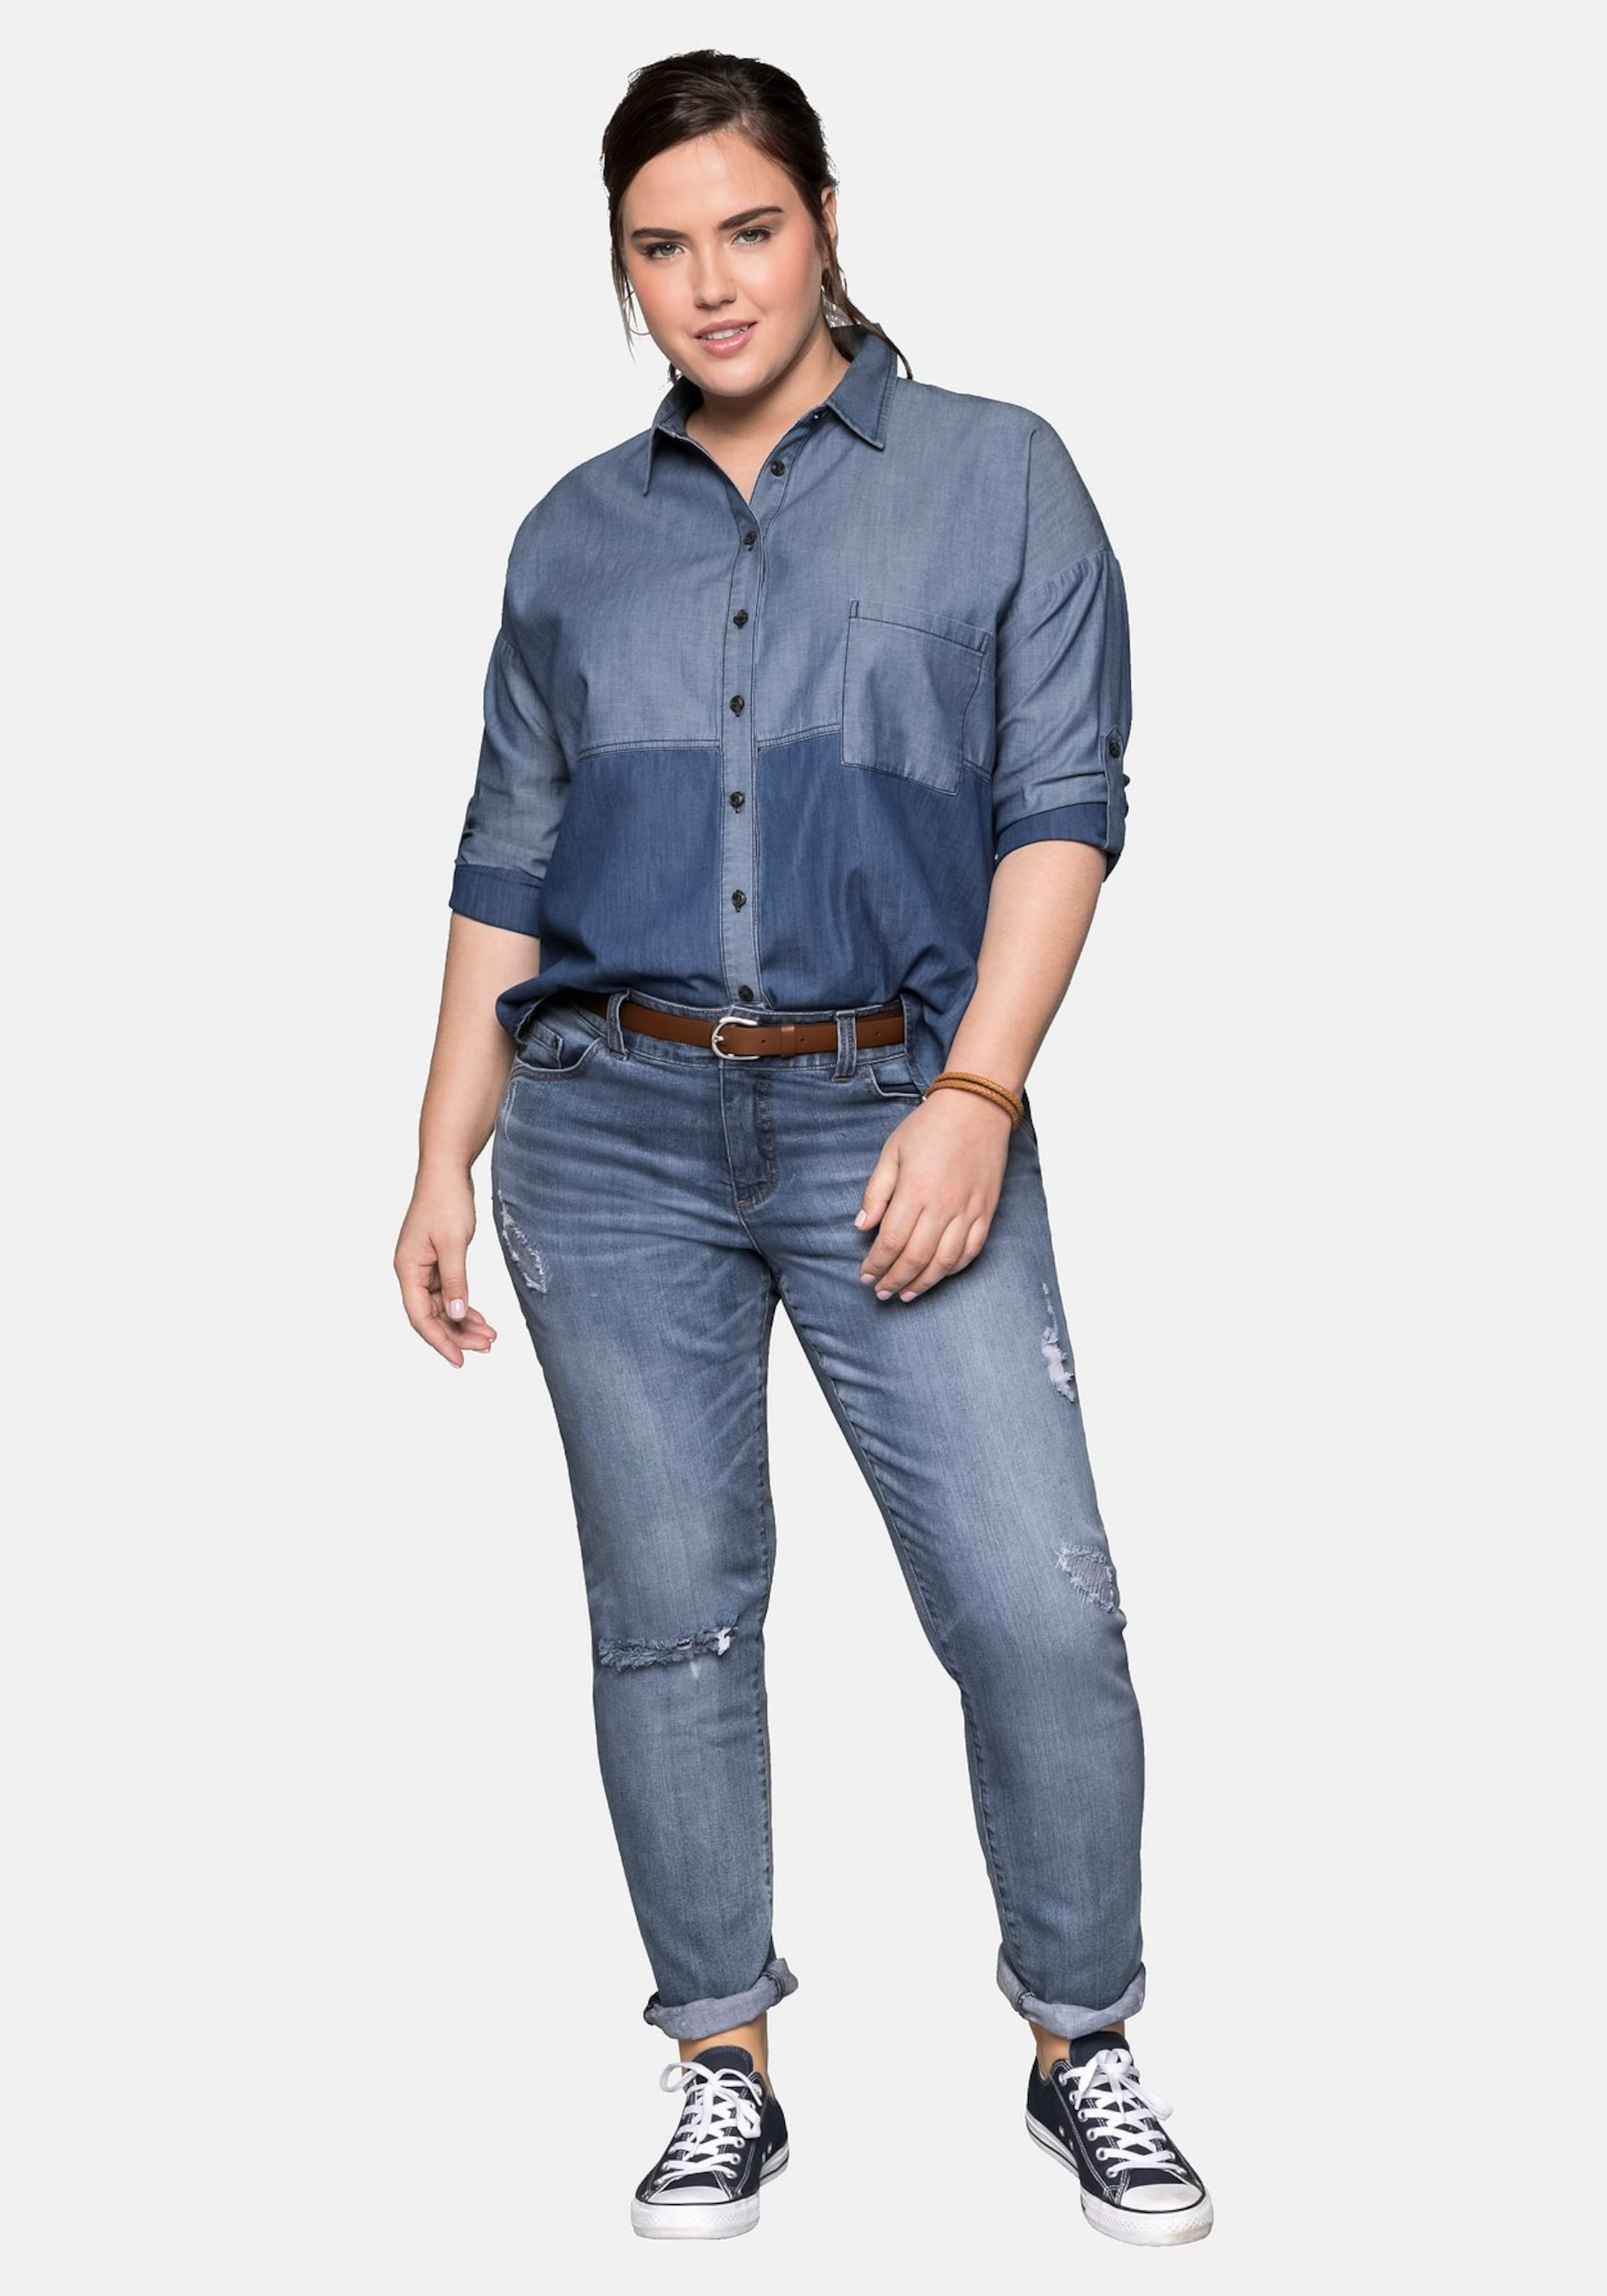 Blau In Sheego Jeansbluse In In Jeansbluse Sheego Sheego Blau Jeansbluse Blau Nv8Omny0w